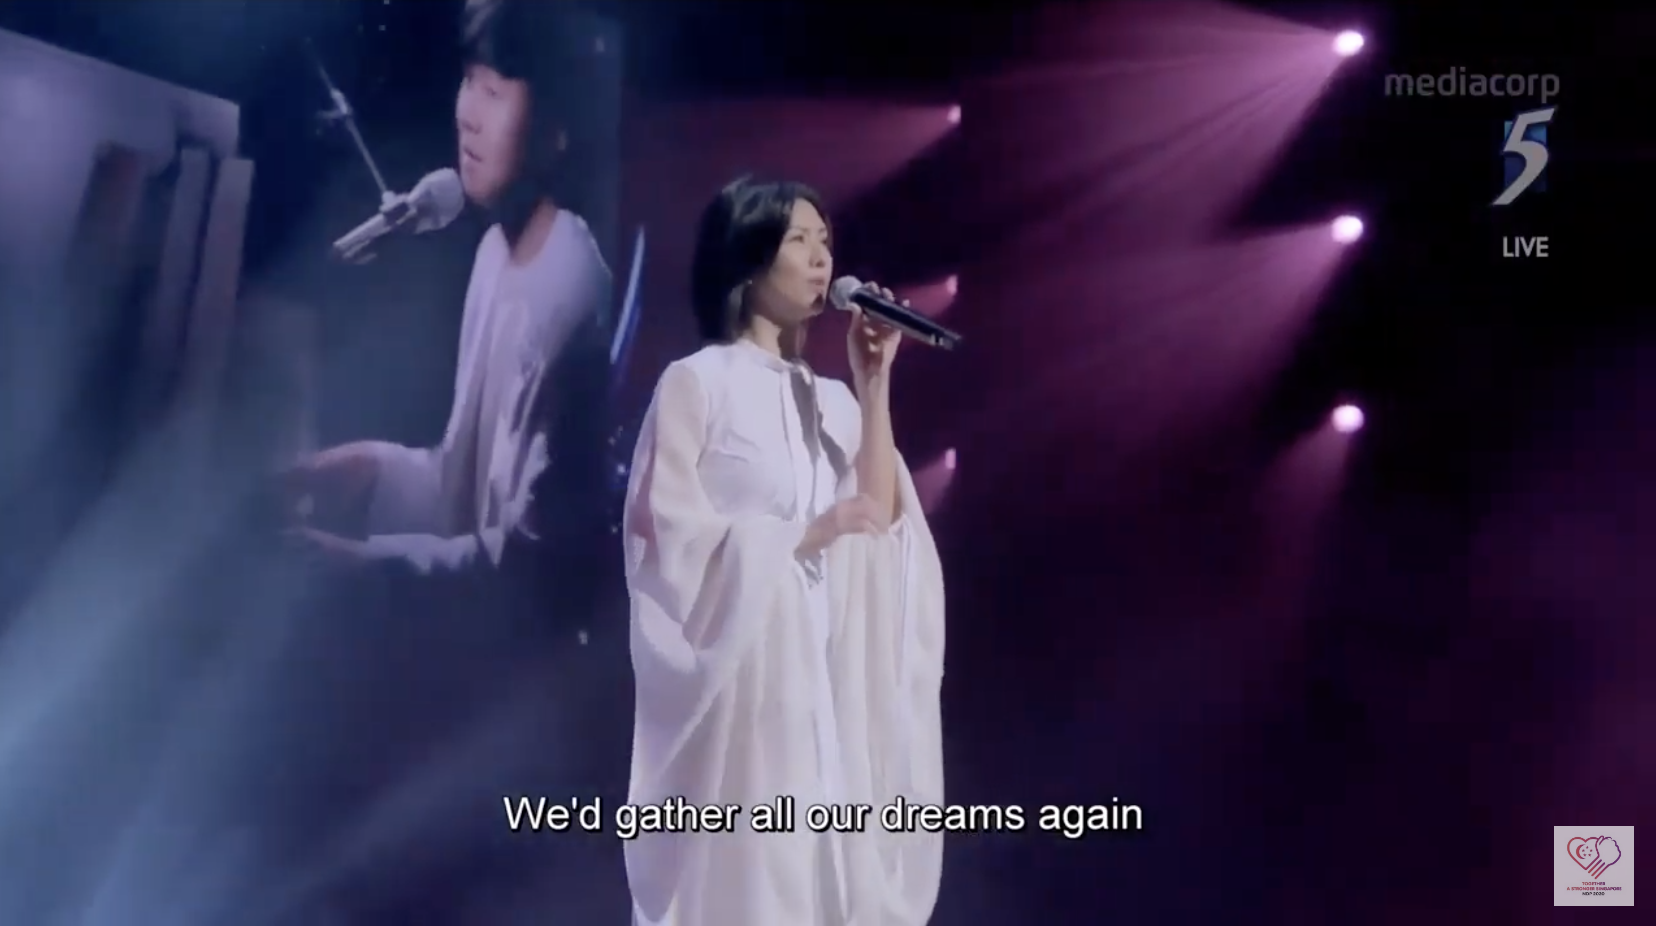 NDP 2020 Stay With You, Stefanie Sun, JJ Li,  Heema Izzati Zainudin